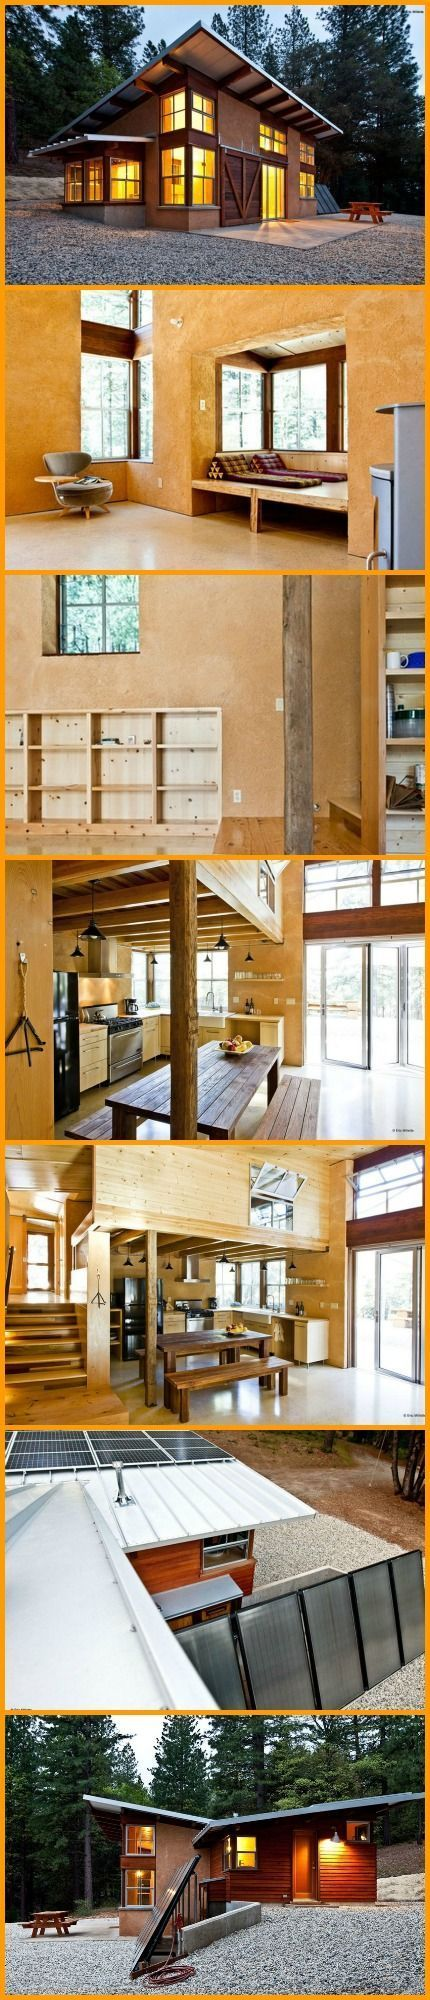 Best 25+ Energy Efficient Homes Ideas On Pinterest | Energy Efficiency,  Energy Saving Tips And Sustainable Houses